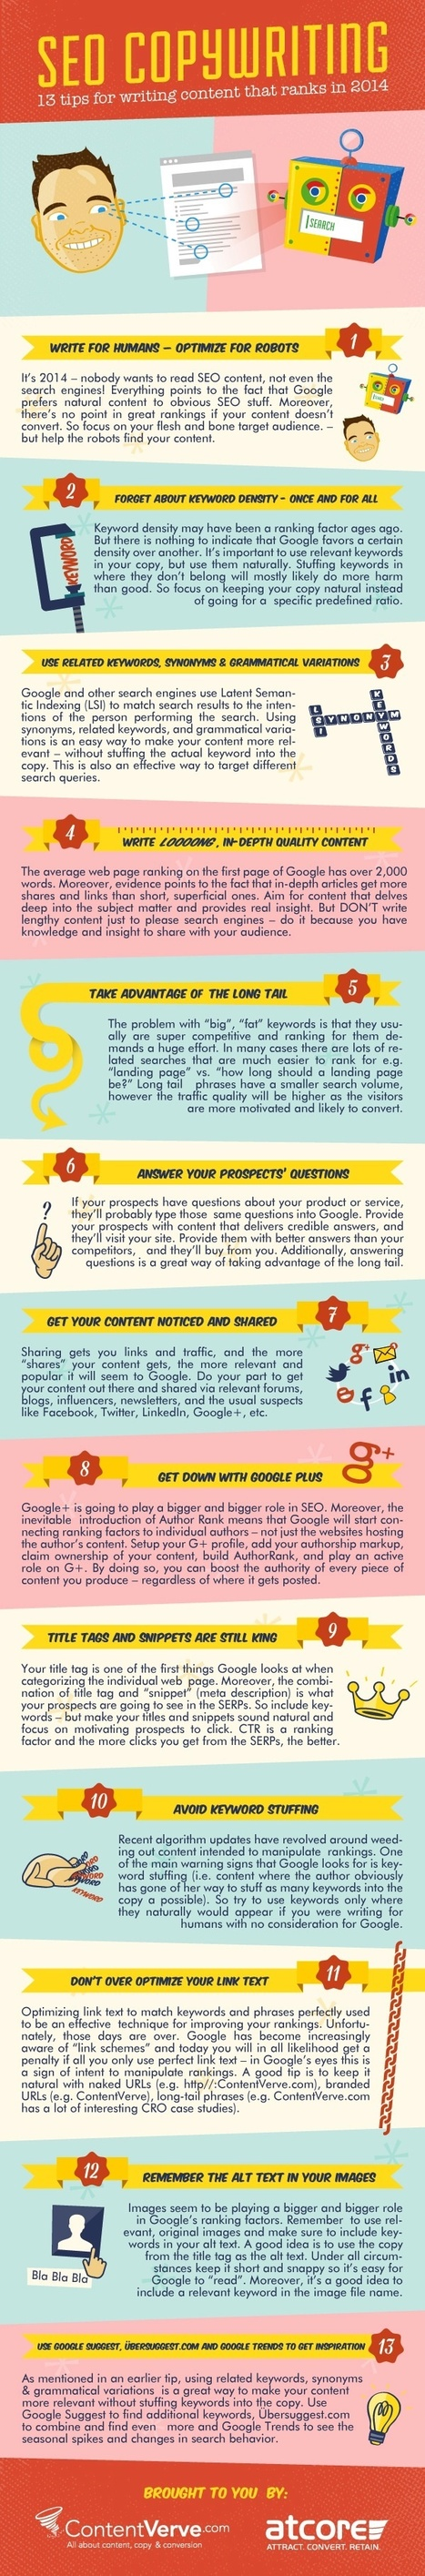 13 Essential Copywriting Tips to Help You Rank in Search in 2014 [Infographic] | digital marketing strategy | Scoop.it